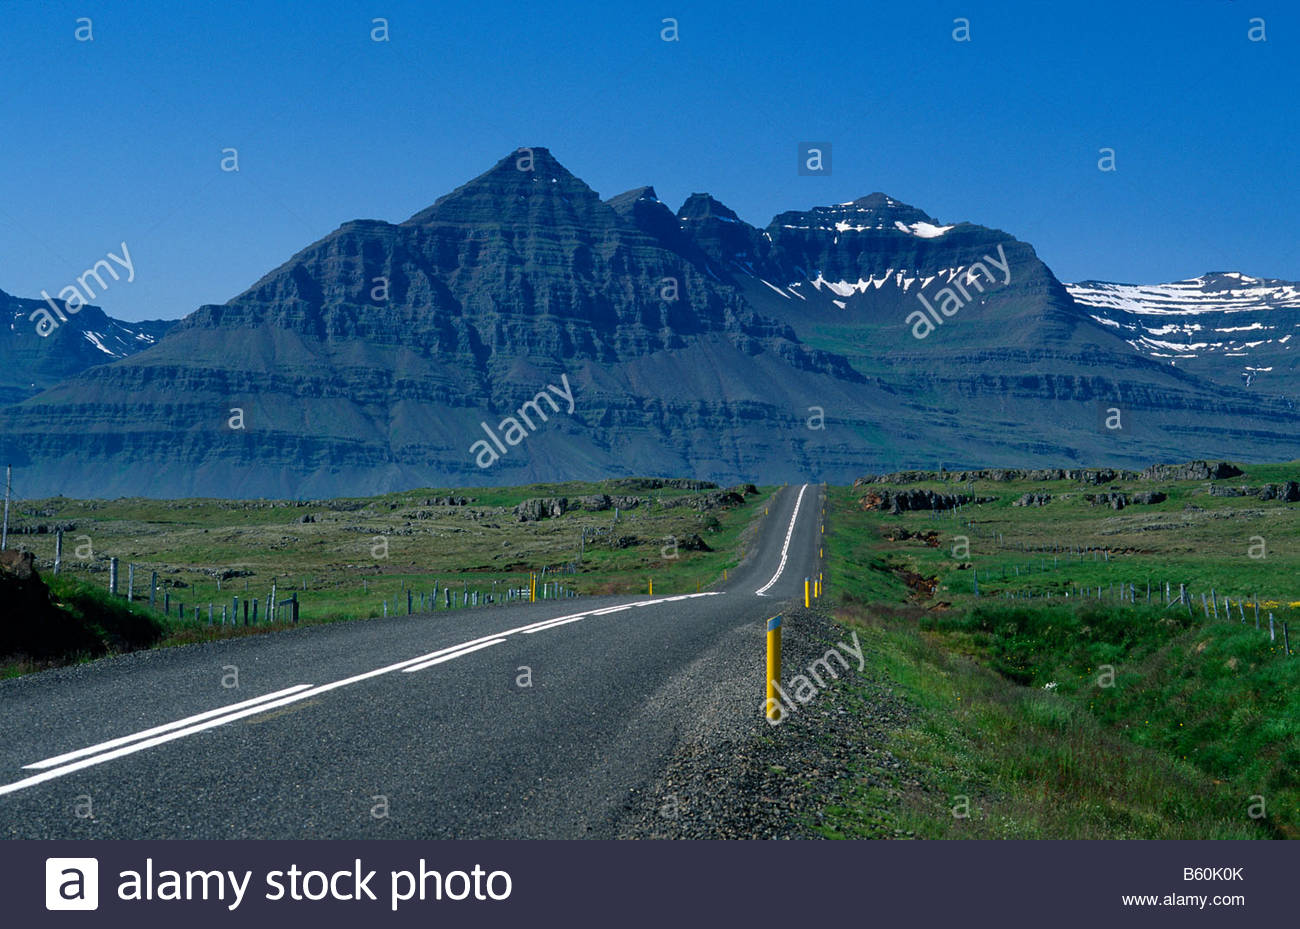 Orbital road east of the fishing village Djupivogur in the Eastern Fjords, typical basalt mountains of the Eastern - Stock Image